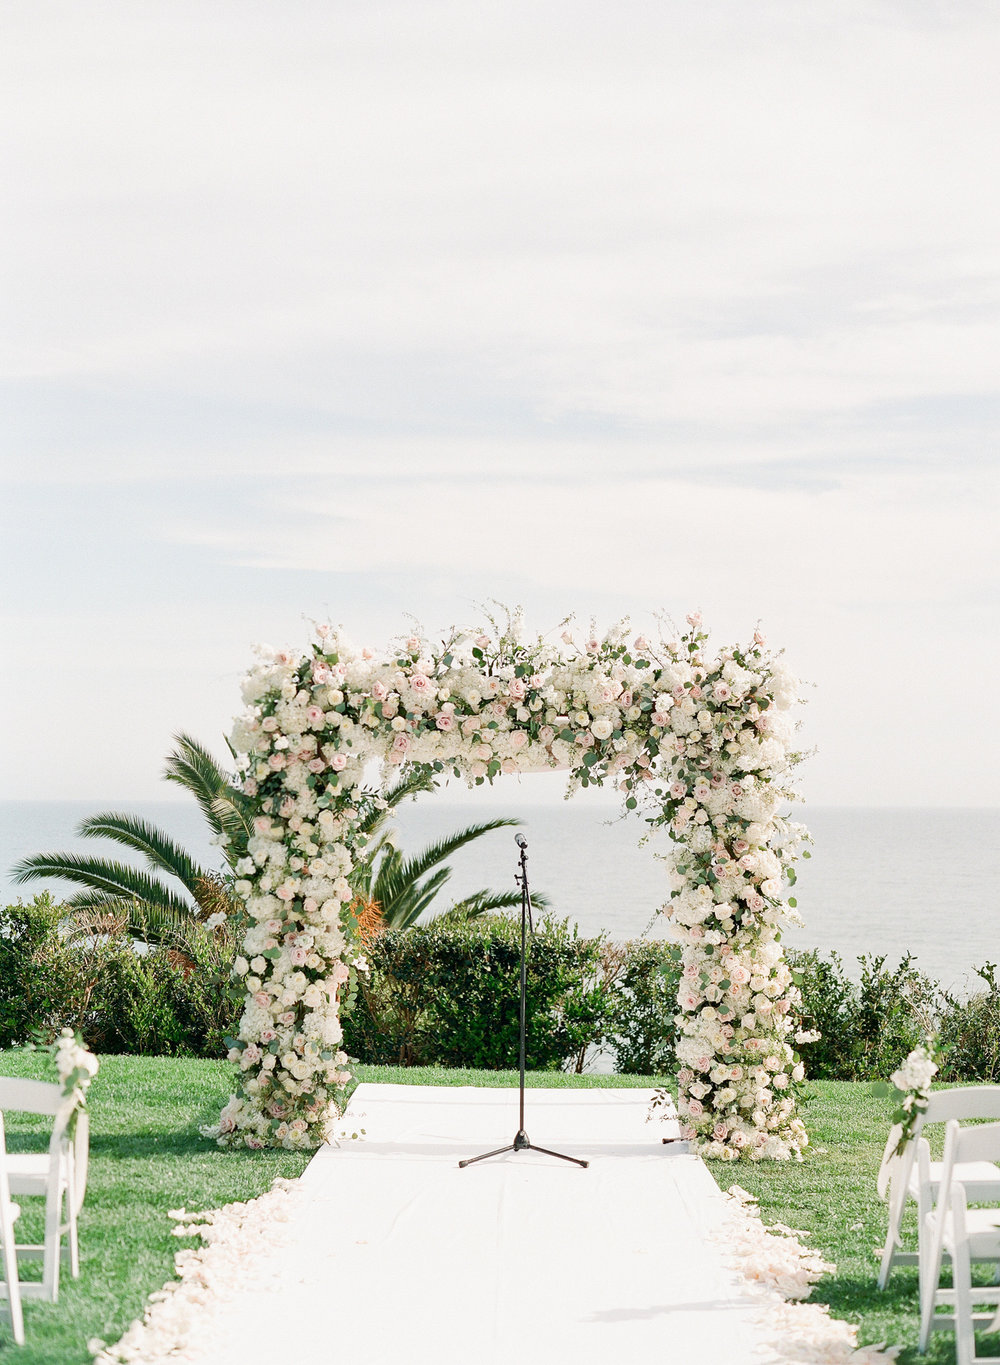 Bel-Air-Bay-Club-Wedding-Film-16.jpg